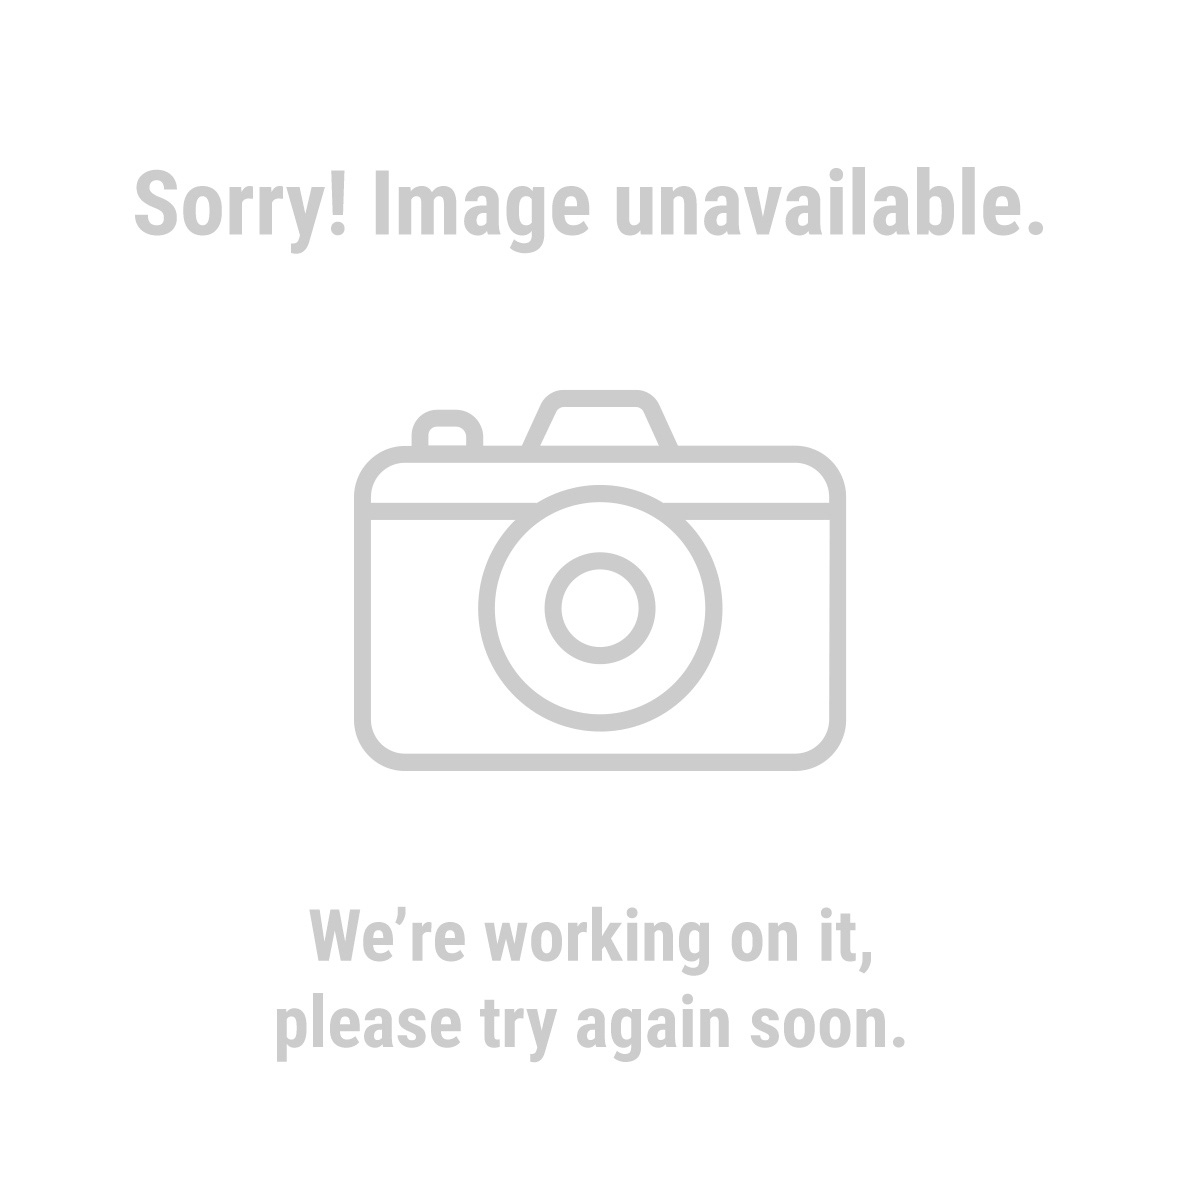 Chicago Electric Welding 61849 90 Amp Flux Wire Welder